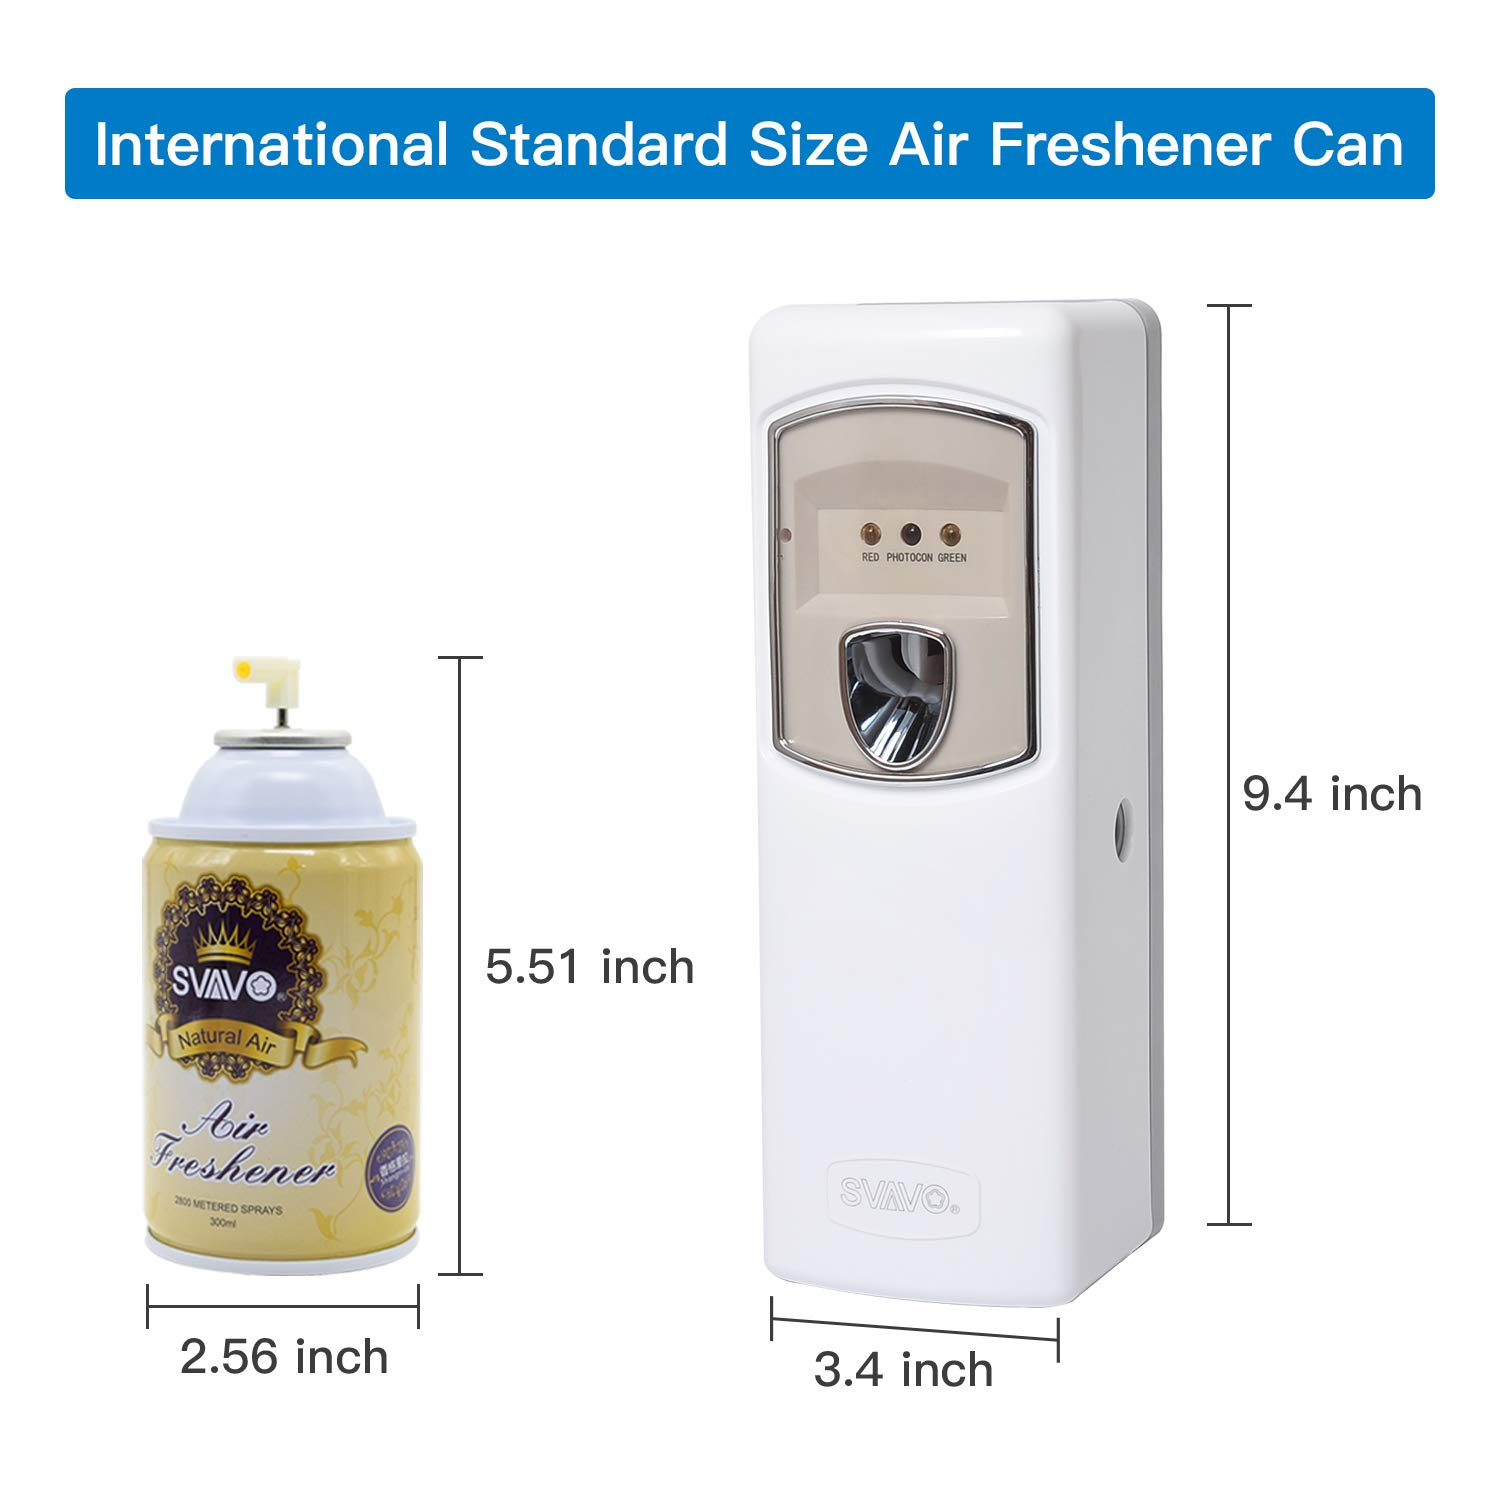 SVAVO Automatic Air Freshener Dispenser - Wall Mounted/Free Standing Auto Aerosol Spray Dispenser Programmable Fragrance Dispenser for Indoor-Bedroom, Hotel, Office, Commercial Place, White by SVAVO (Image #6)